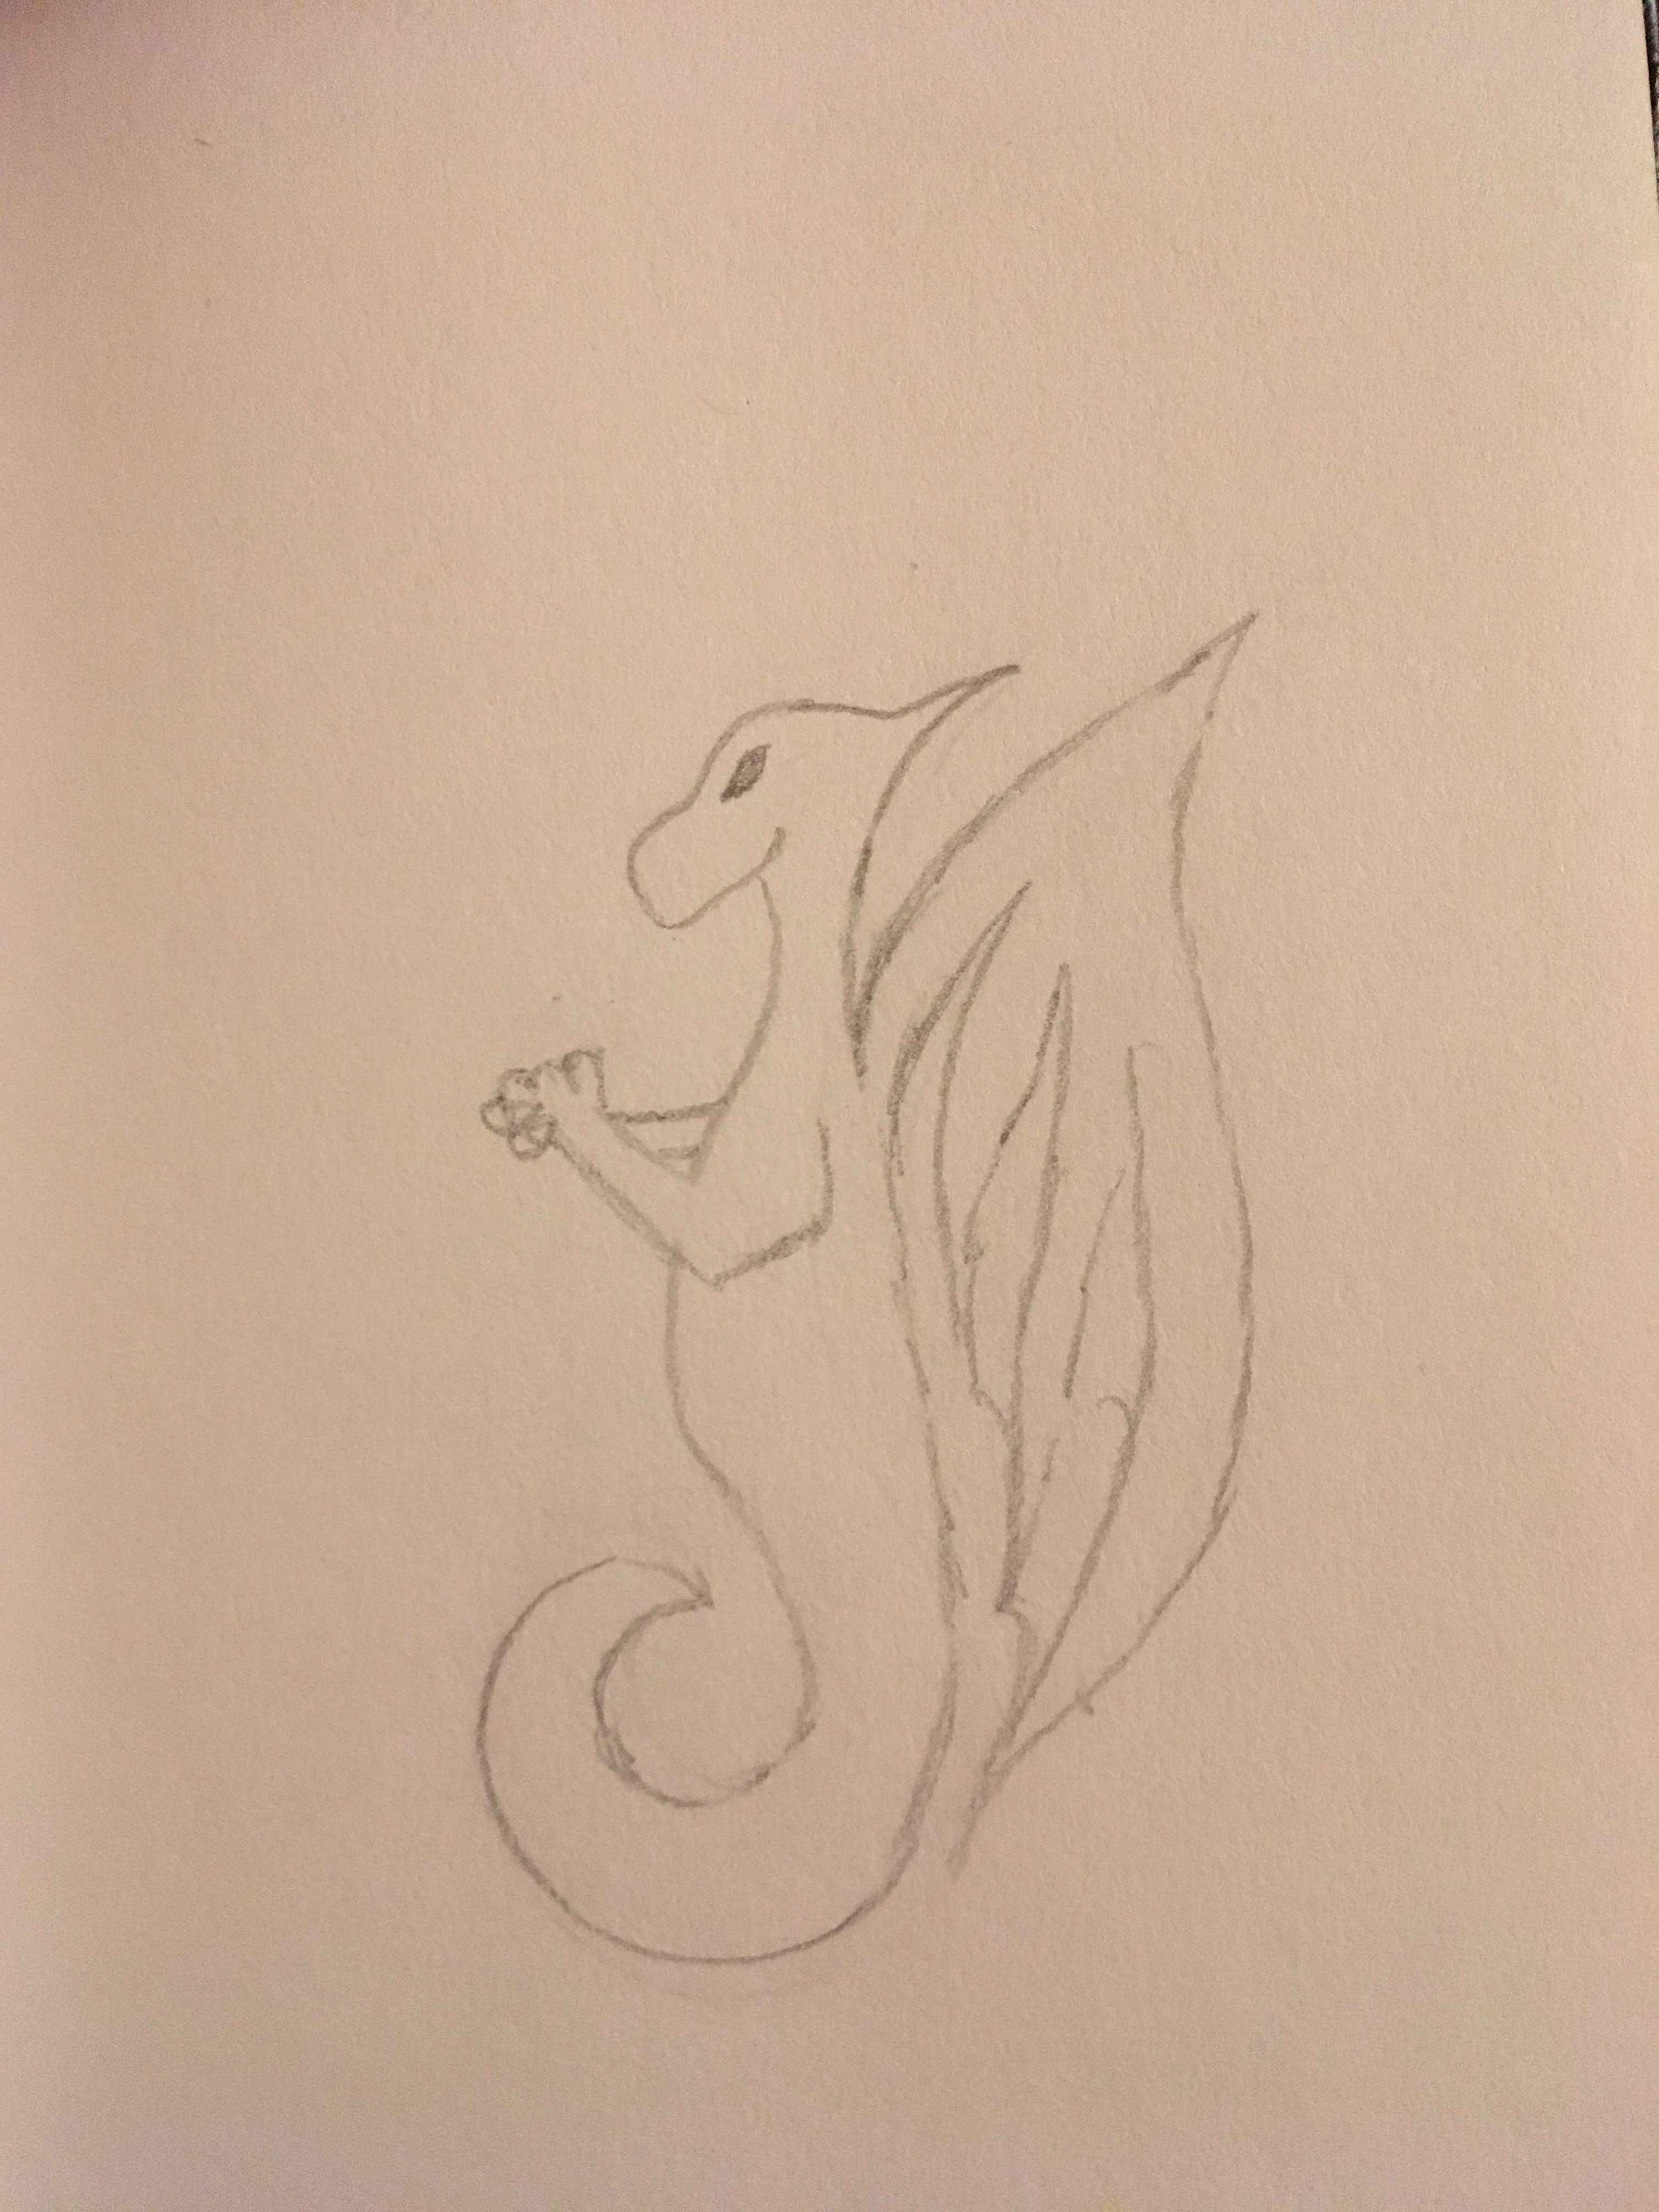 Water dragon with fingers crossed and eyes slit